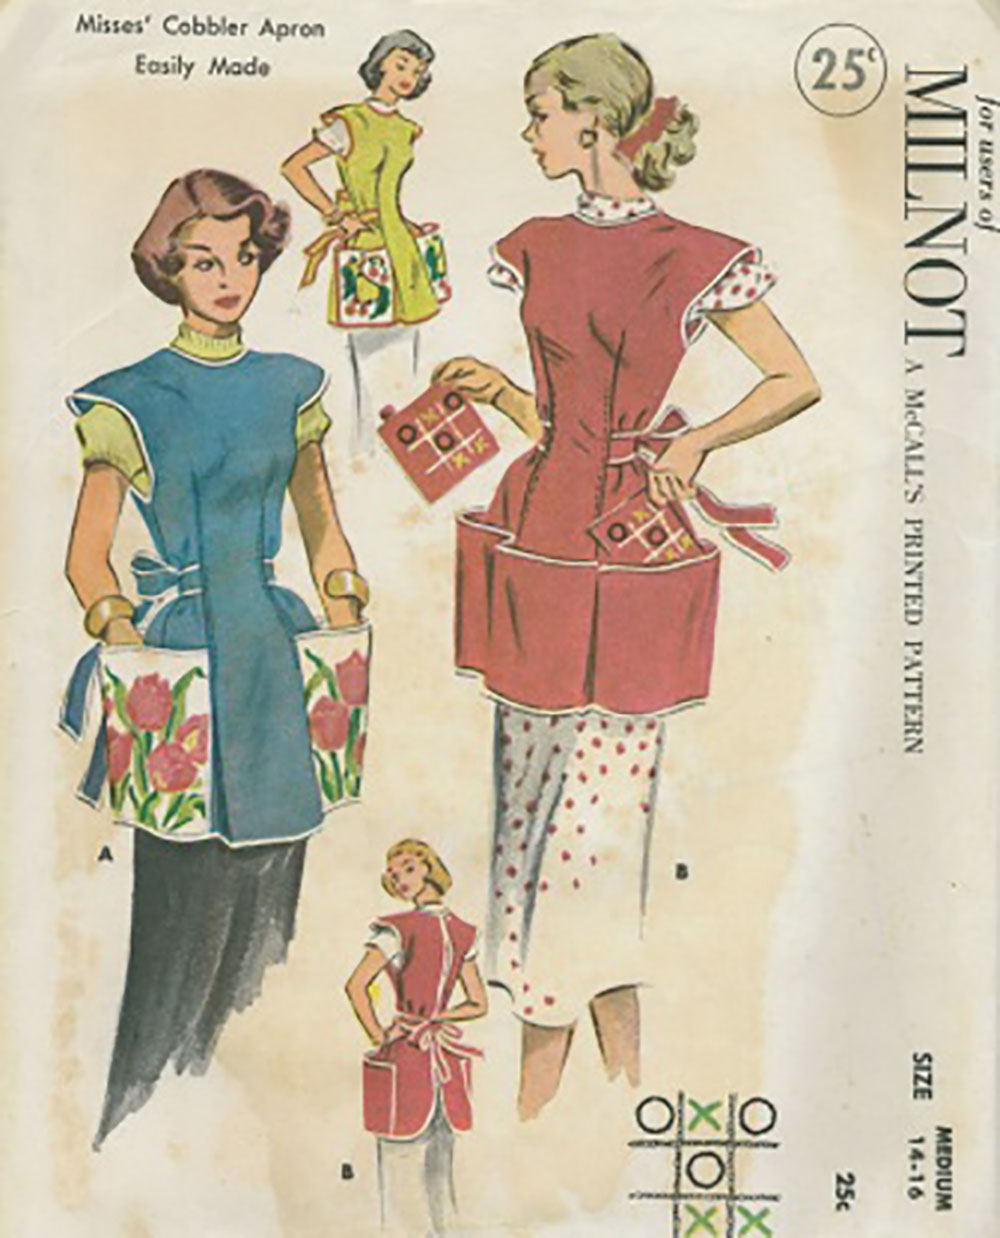 vintage sewing pattern for women's cobbler style aprons